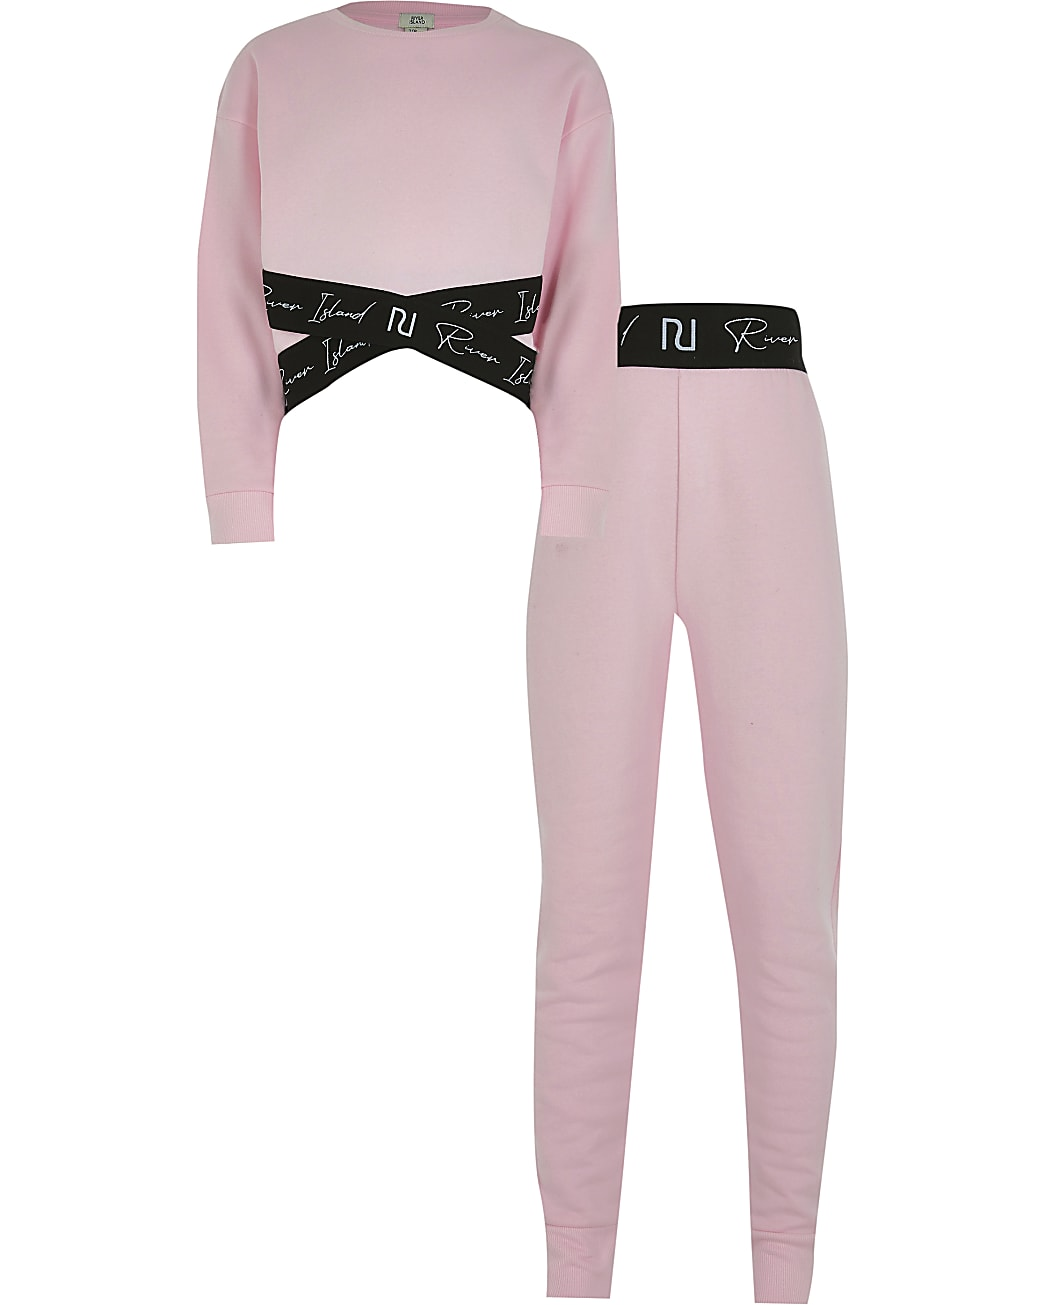 Age 13+ girls pink sweatshirt outfit